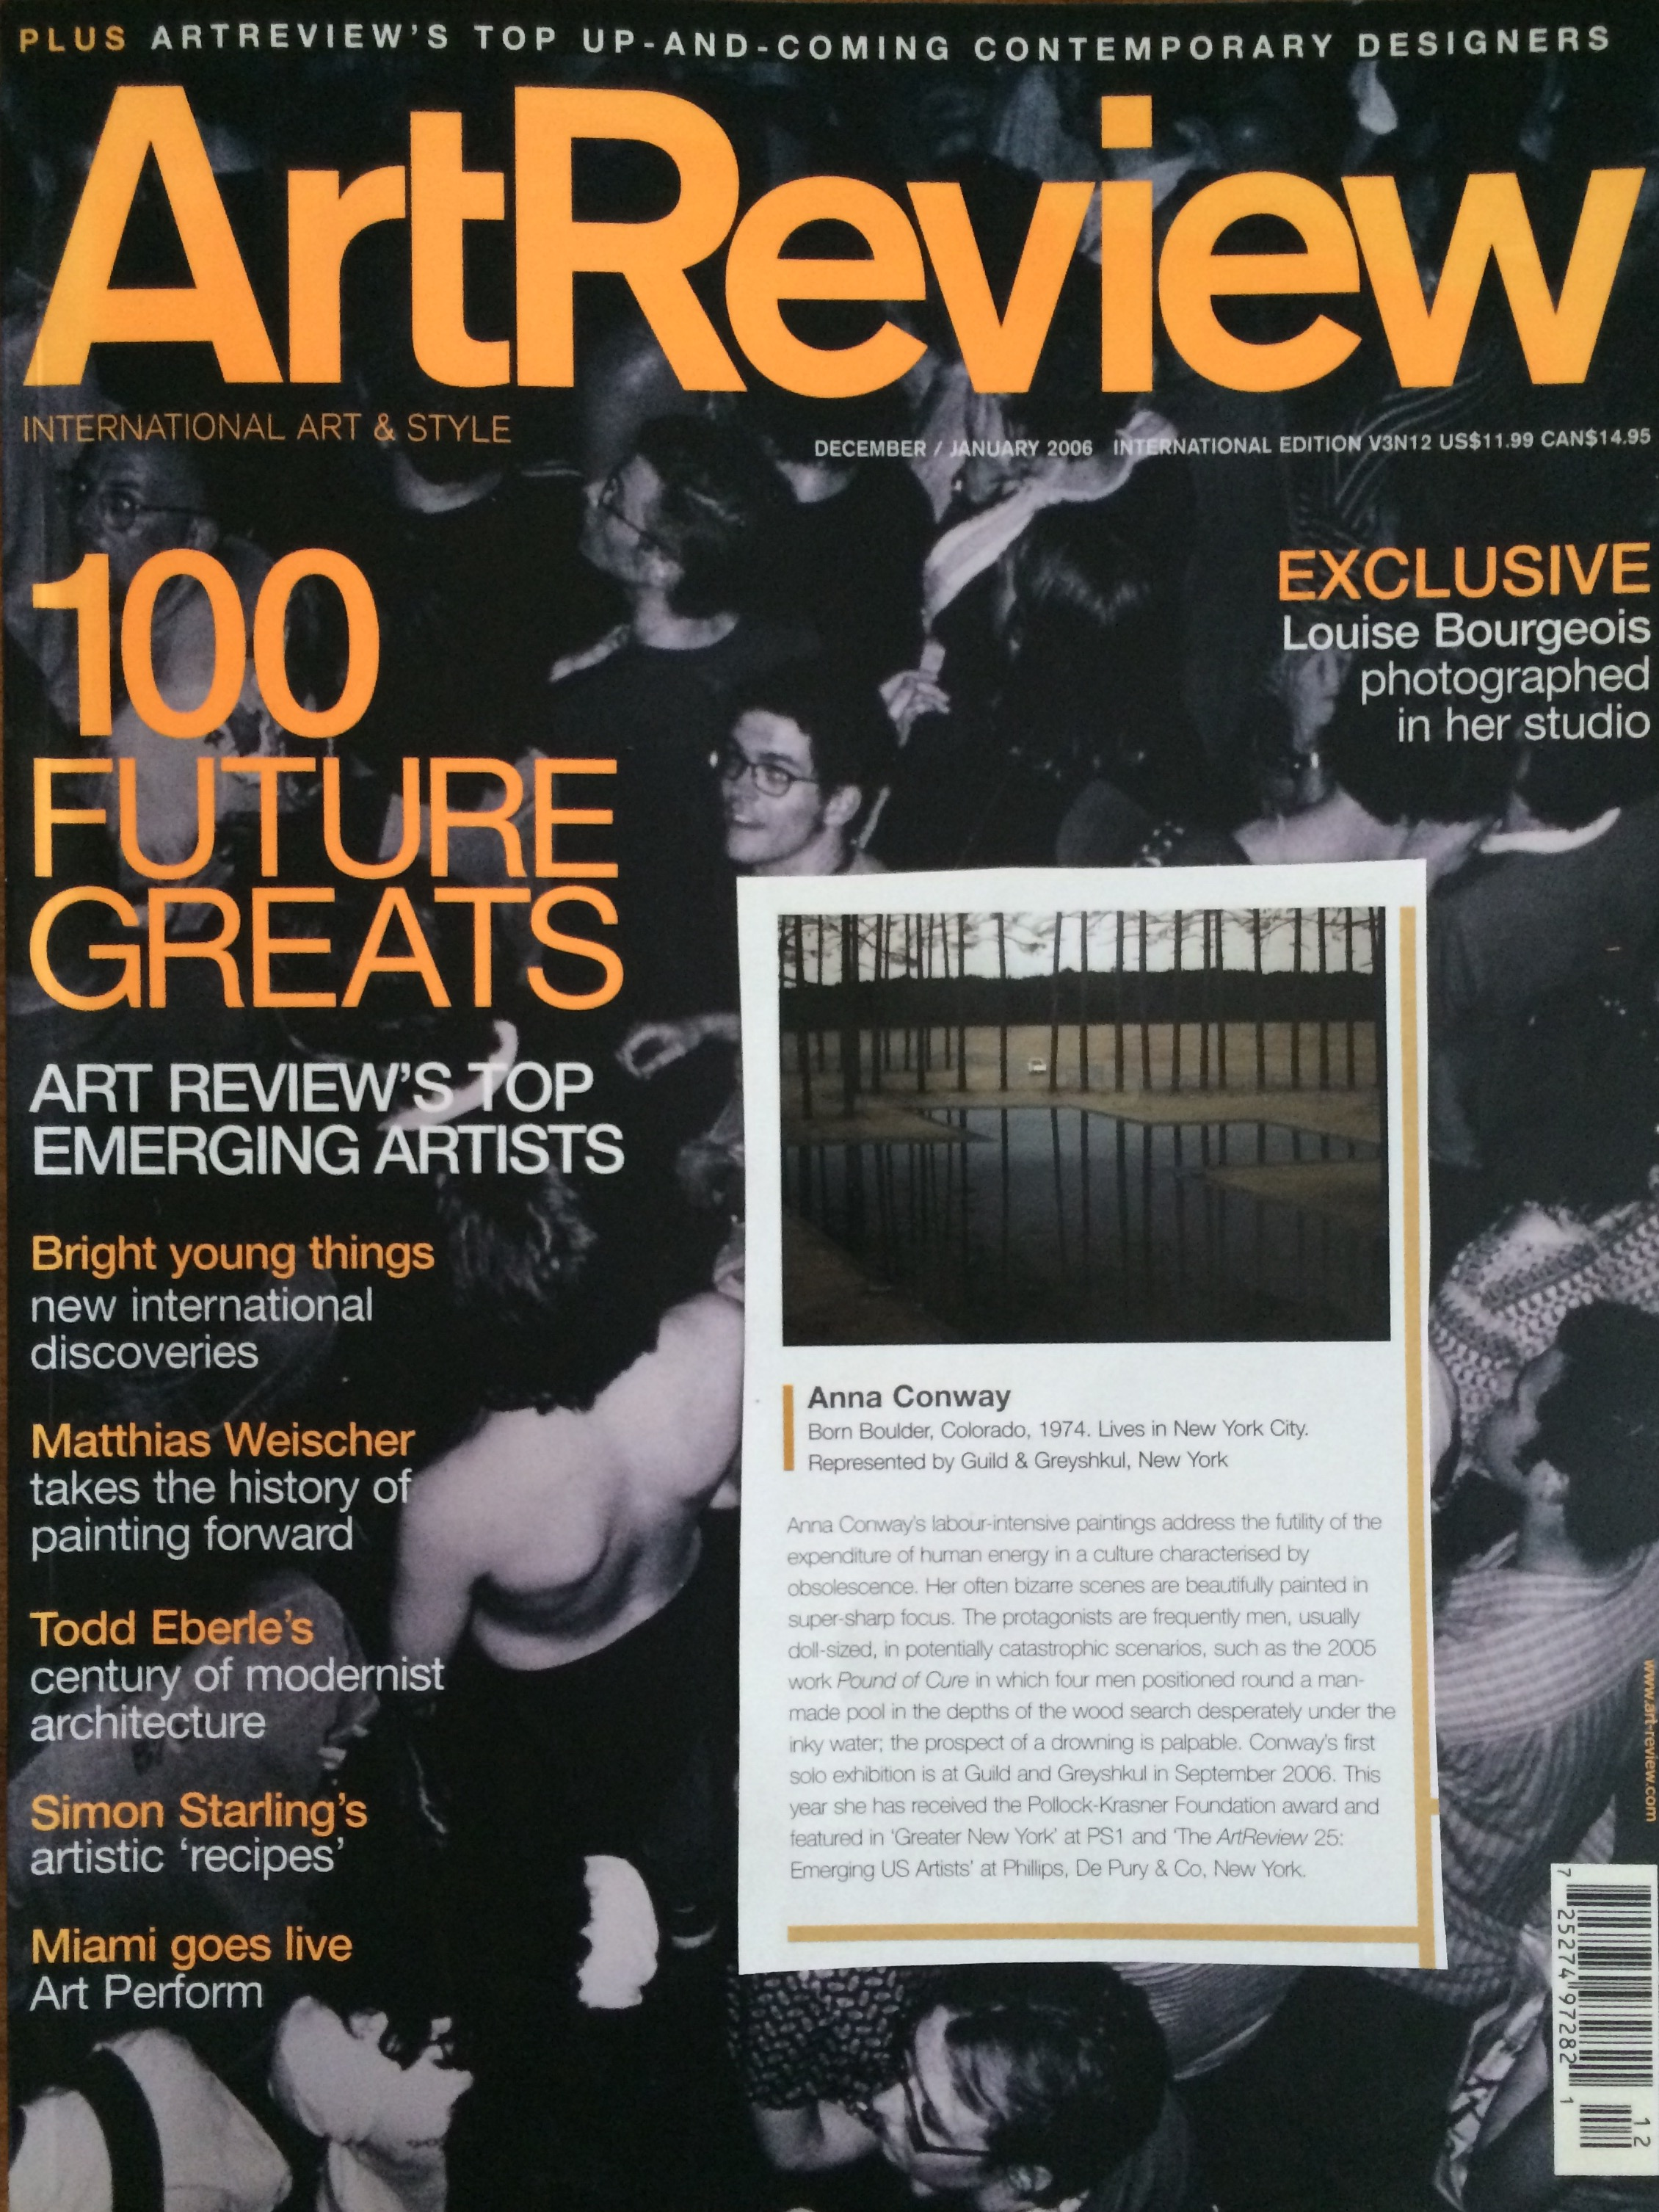 ArtReview, January 2006